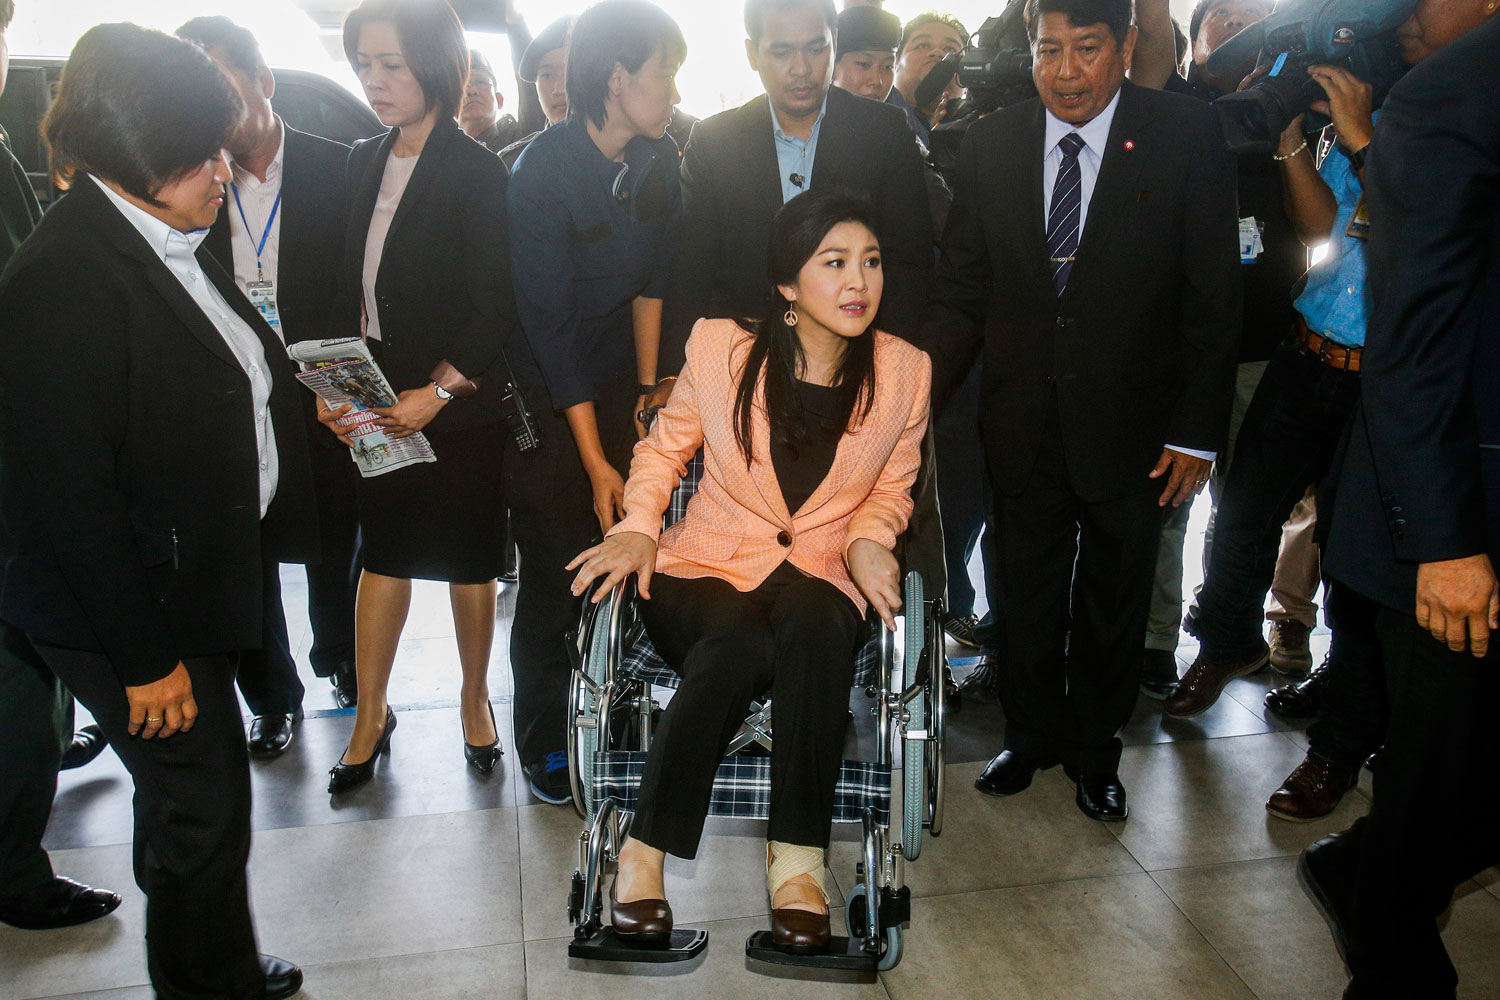 Thailand's Prime Minister Yingluck Shinawatra, center, arrives on a wheelchair at the Royal Police Cadet Academy in Nakorn Pathom province, March 18, 2014.